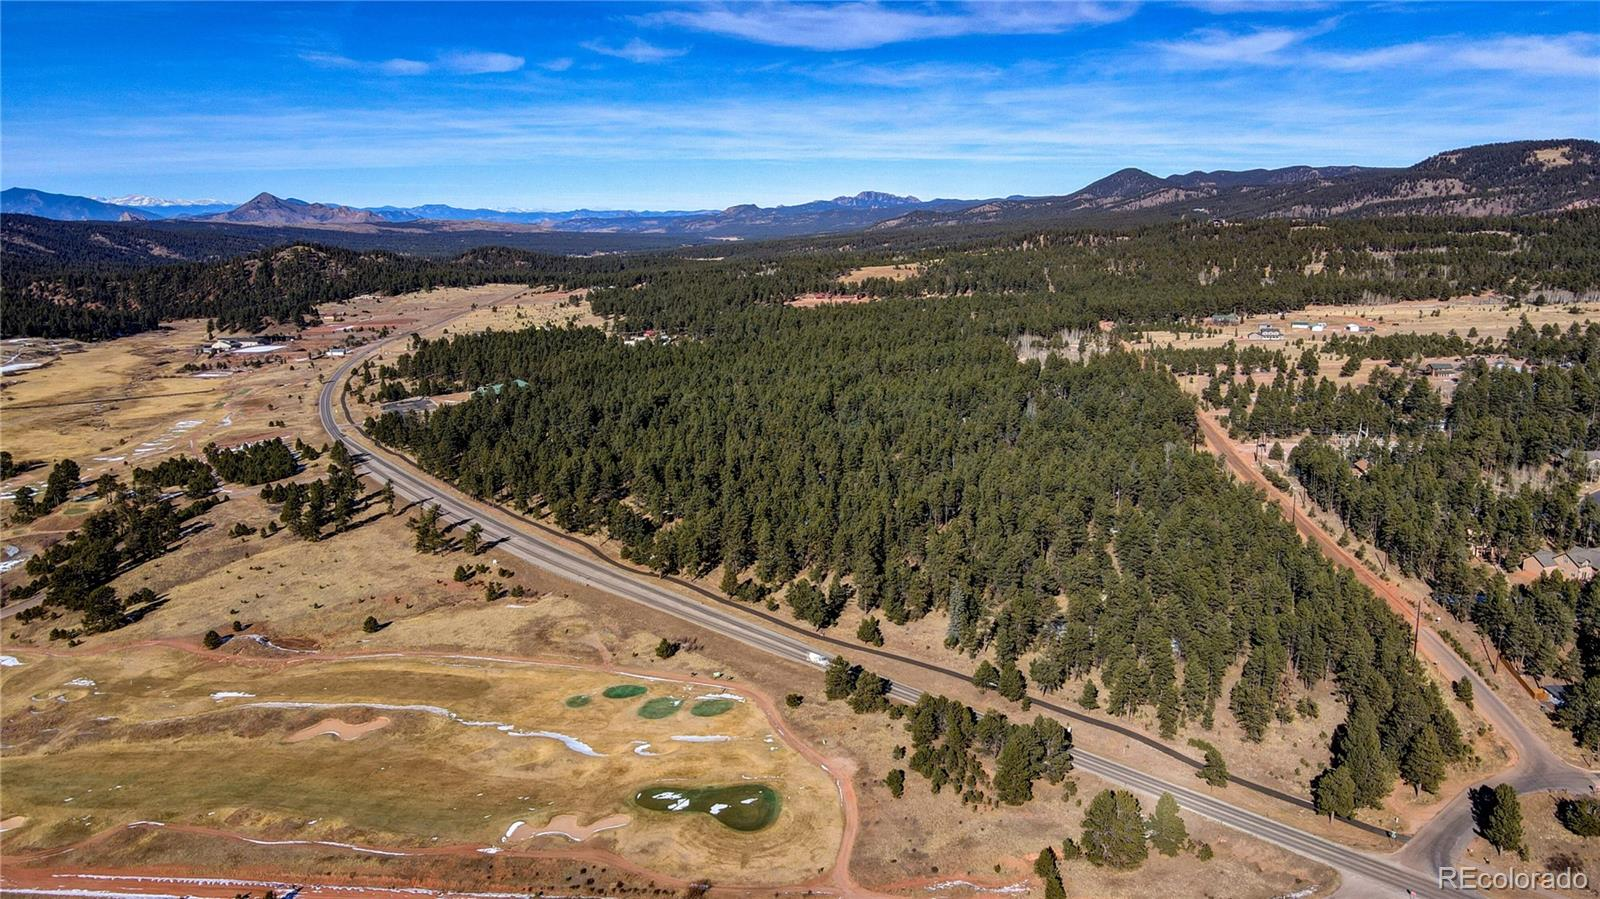 Prime land ready to be developed! One of a kind 20.61 acre zoned PUD inside the city limits of Woodland Park. Amazing views of Pikes Peak and the golf course make this property ideal.  This turn key project is ready to run with and the City of Woodland Park has already approved the preliminary plat for a 26 unit residential subdivision.  Initial engineering phase is complete, survey is included, CDOT approval has been granted.  Located on city utilities this is a developers dream.  With housing inventory at an all time low there is no greater time to develop this parcel.